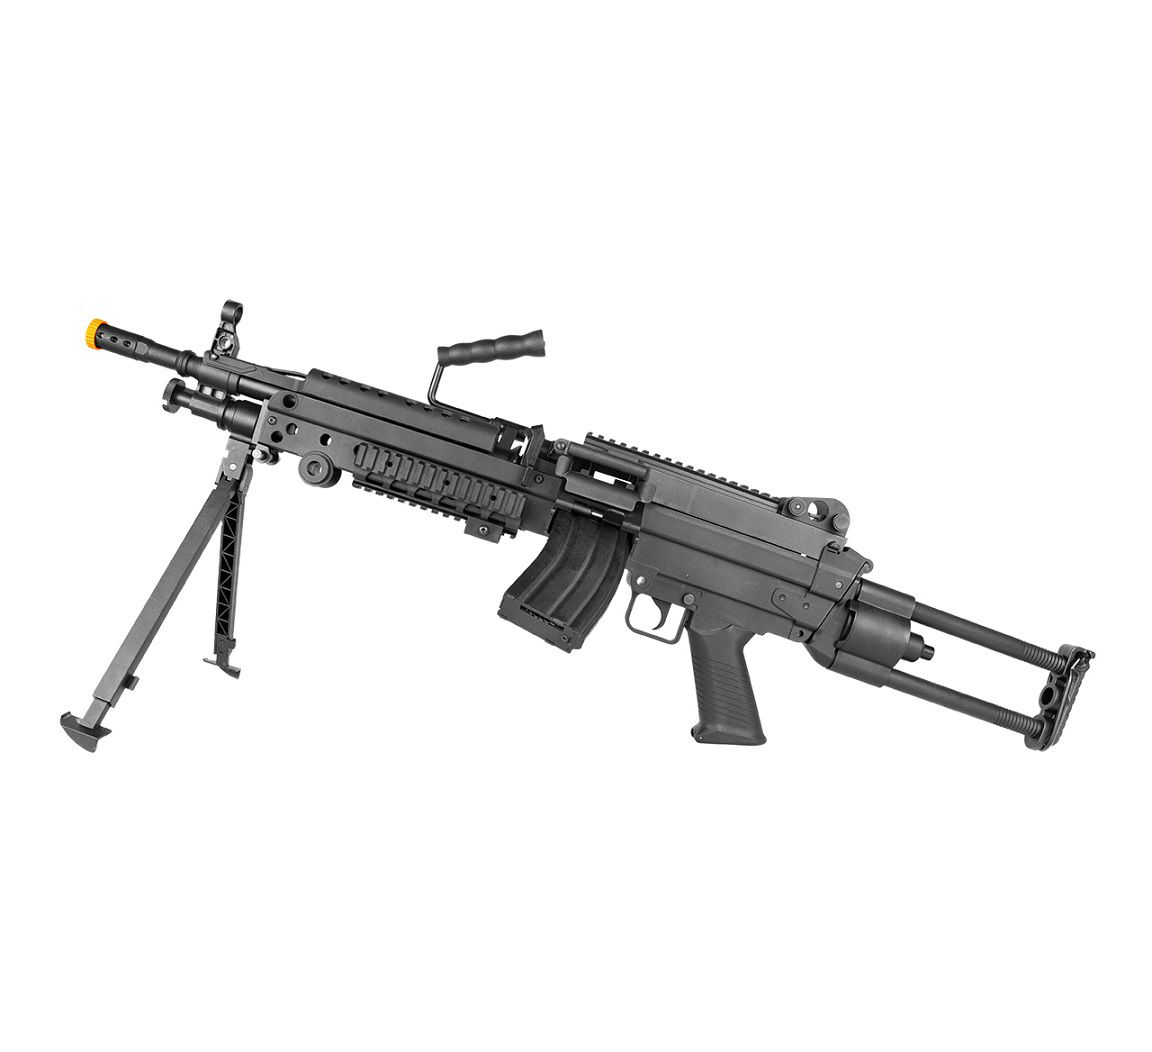 AIRSOFT RIFLE LMG M249 LIGHT ELET 6MM